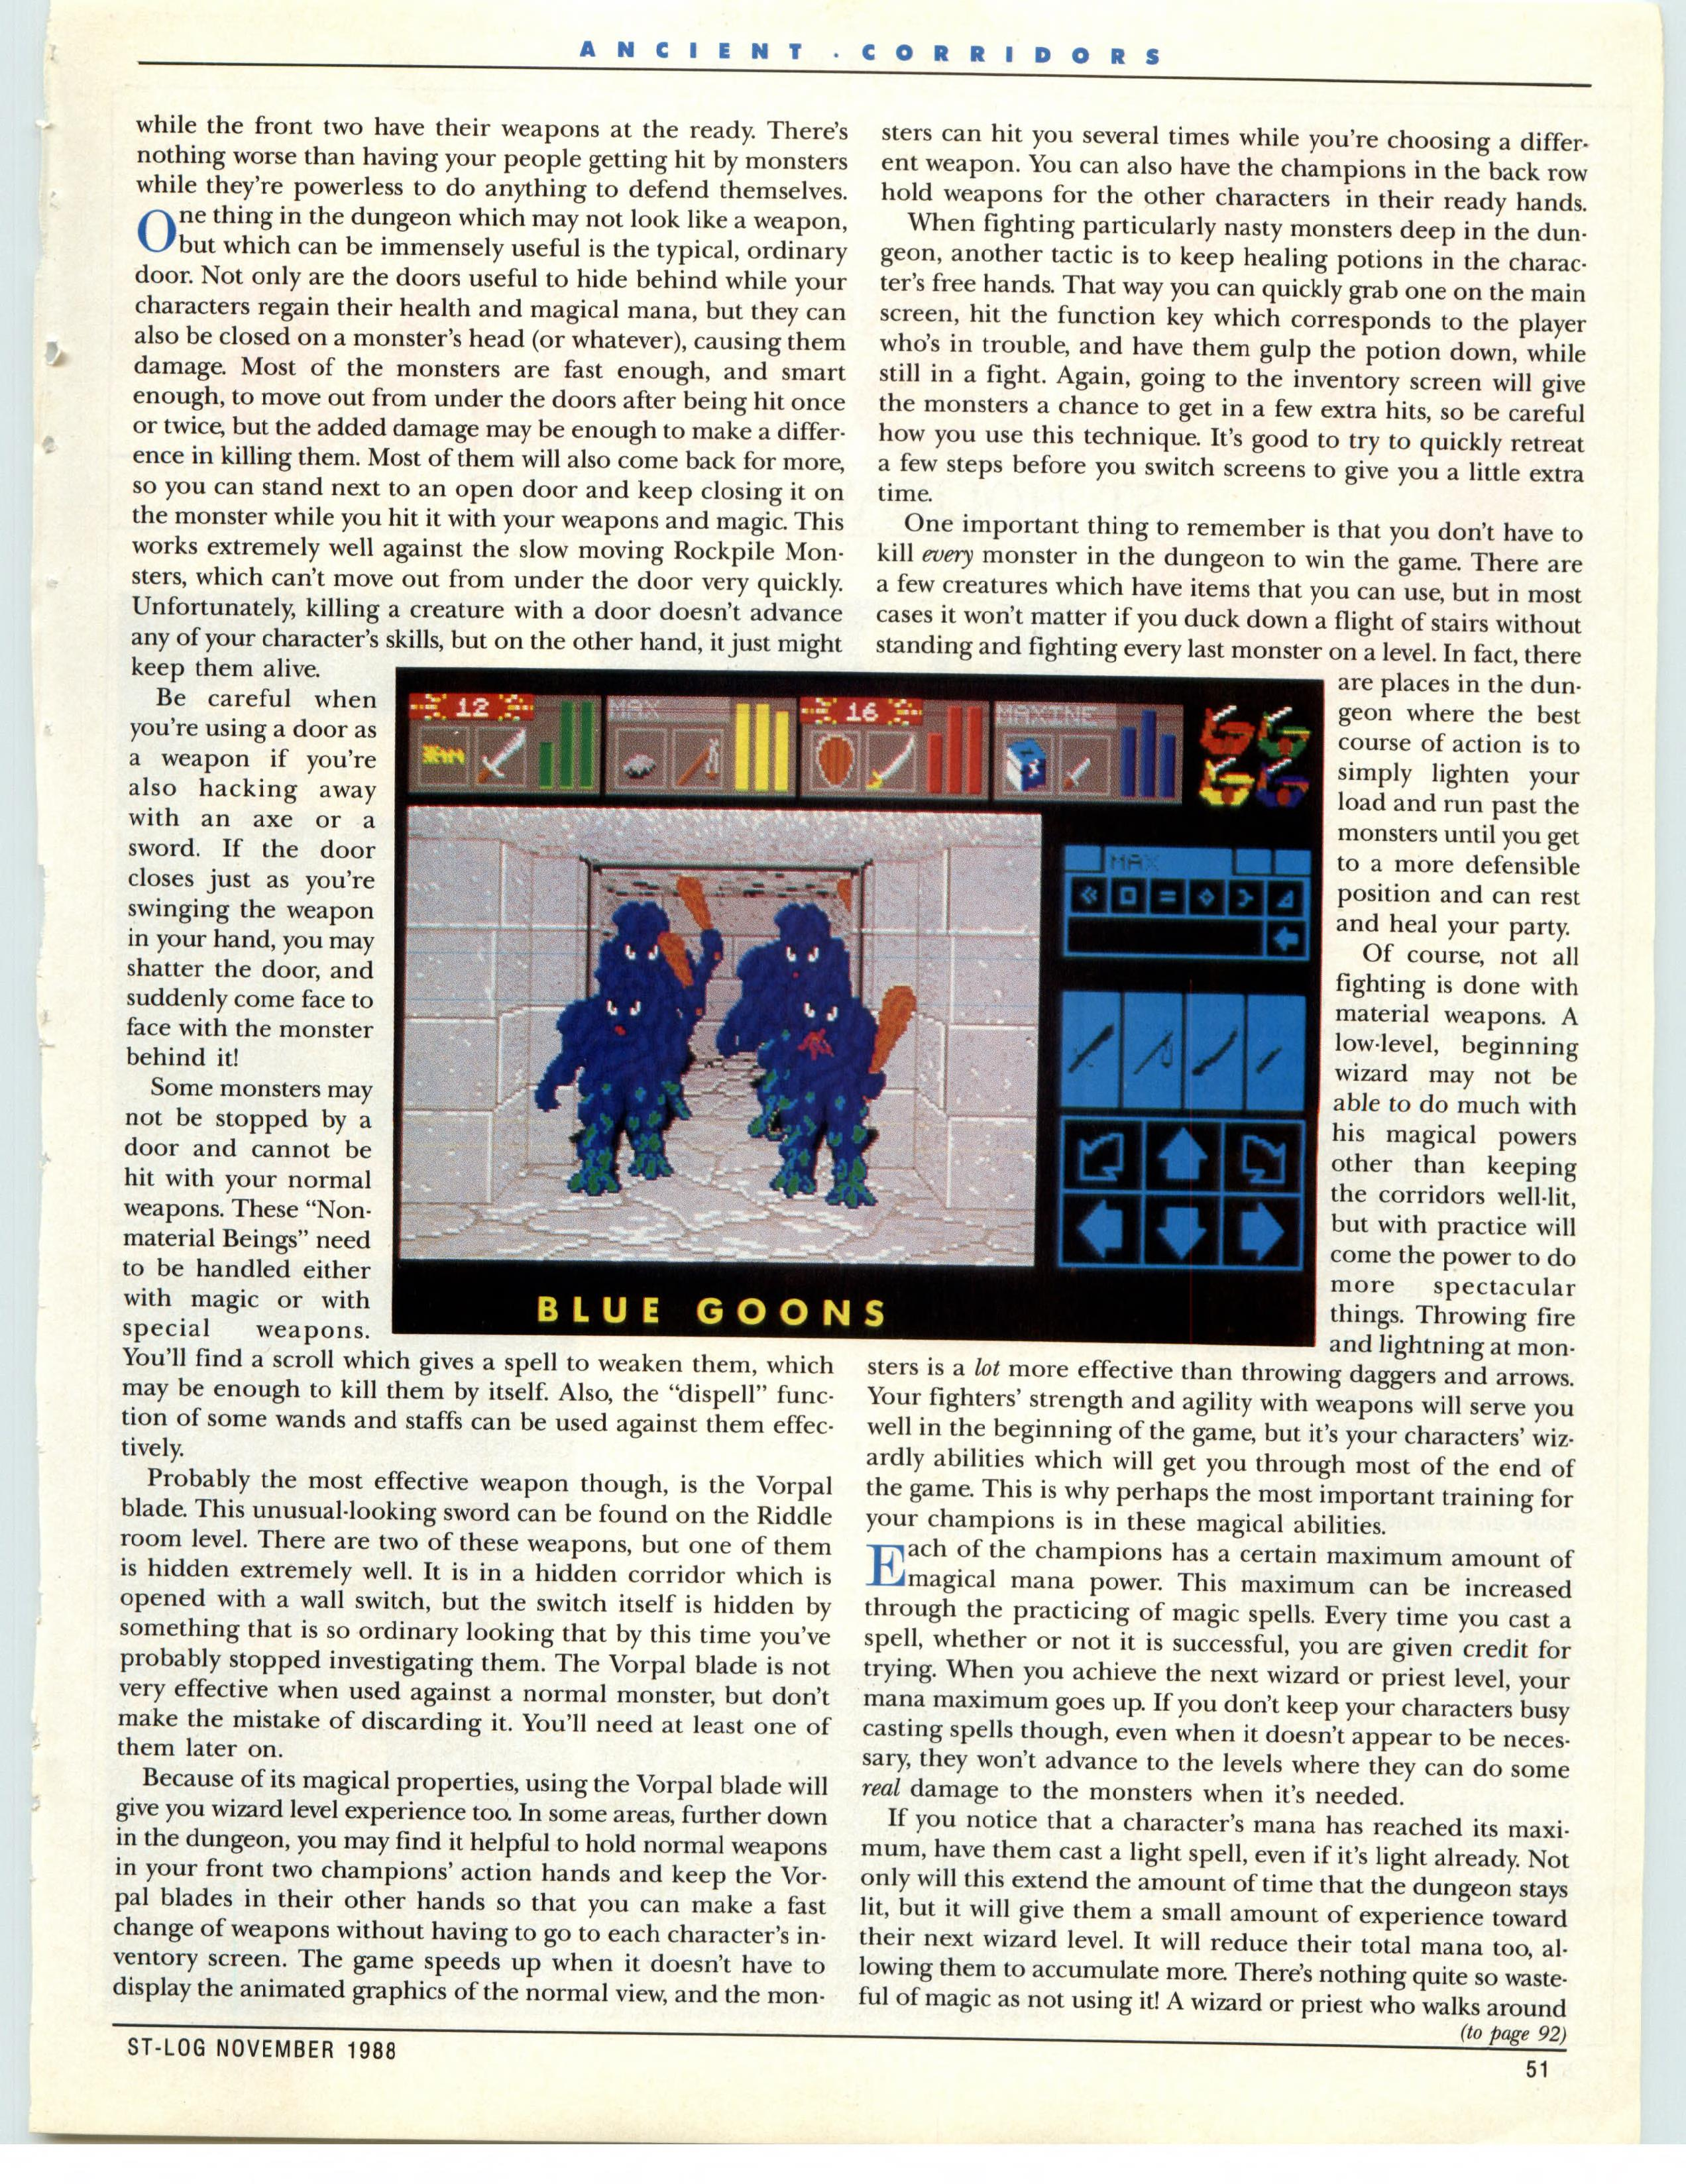 Dungeon Master for Atari ST Guide published in American magazine 'ST-Log', Issue #25 November 1988, Page 51